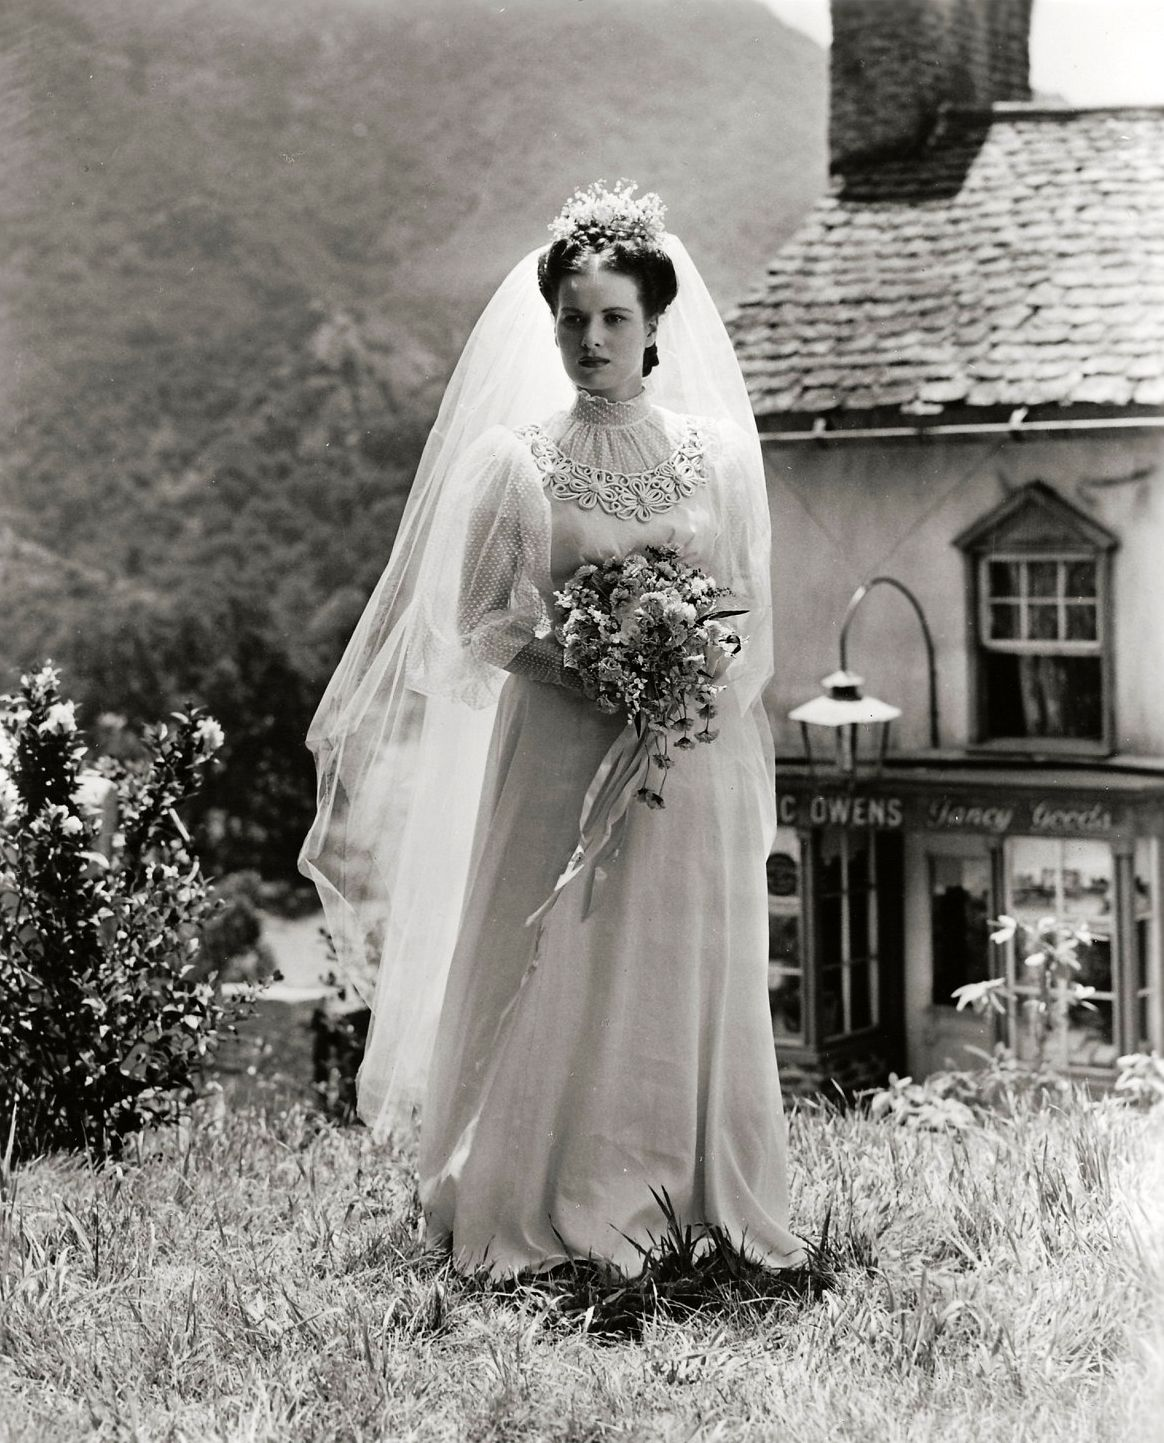 Wedding dress donations for military brides  Maureen OuHara looking tragic and beautiful in HOW GREEN WAS MY